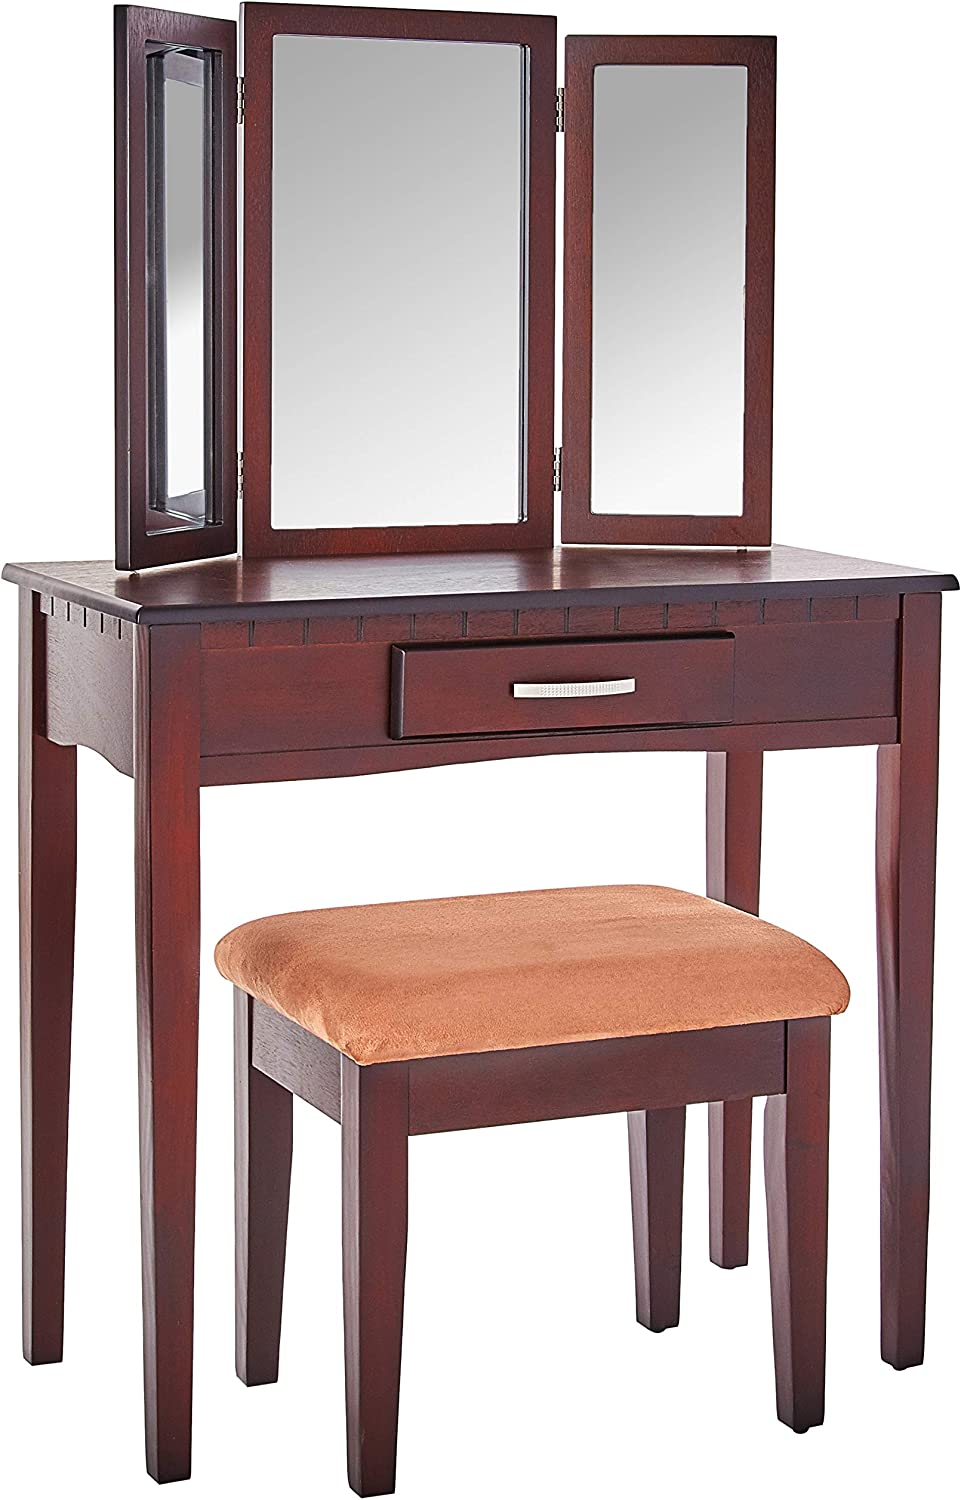 Frenchi Home Furnishing Today's only 2 Piece Set Stool Vani free